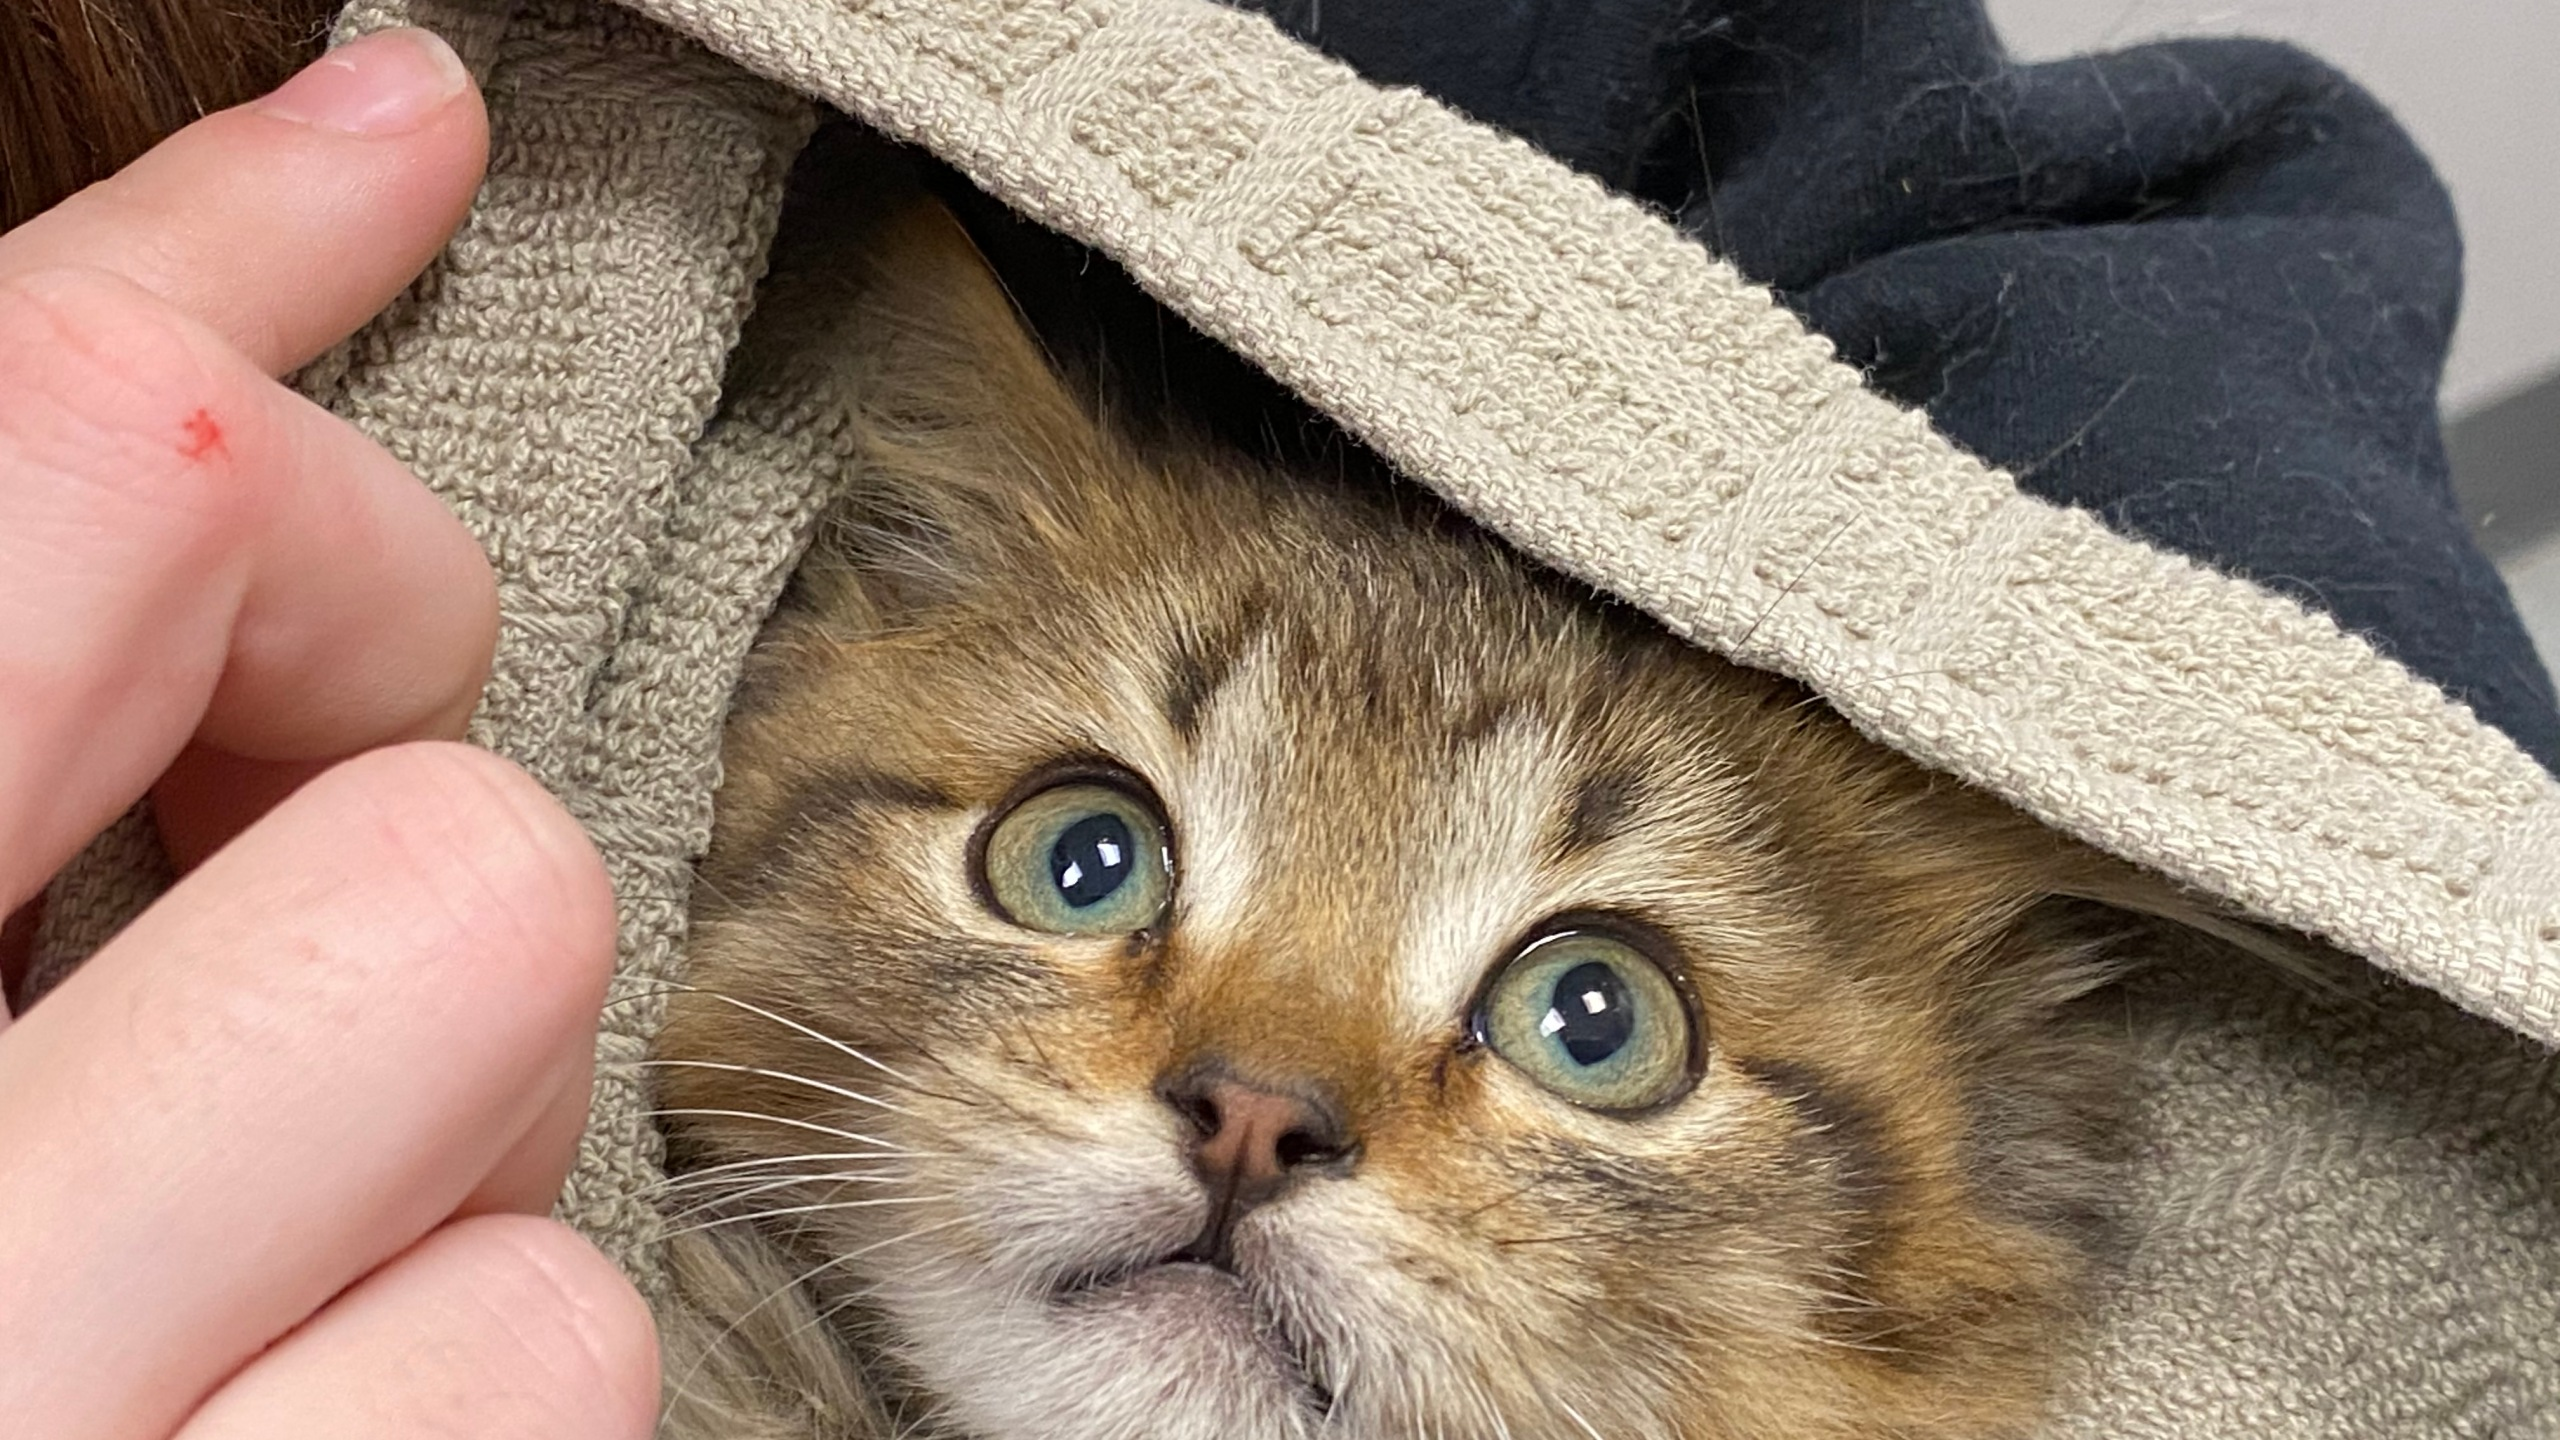 Good Samaritan saves kitten frozen to truck tire in Colorado (Credit: Dumb Friends League)